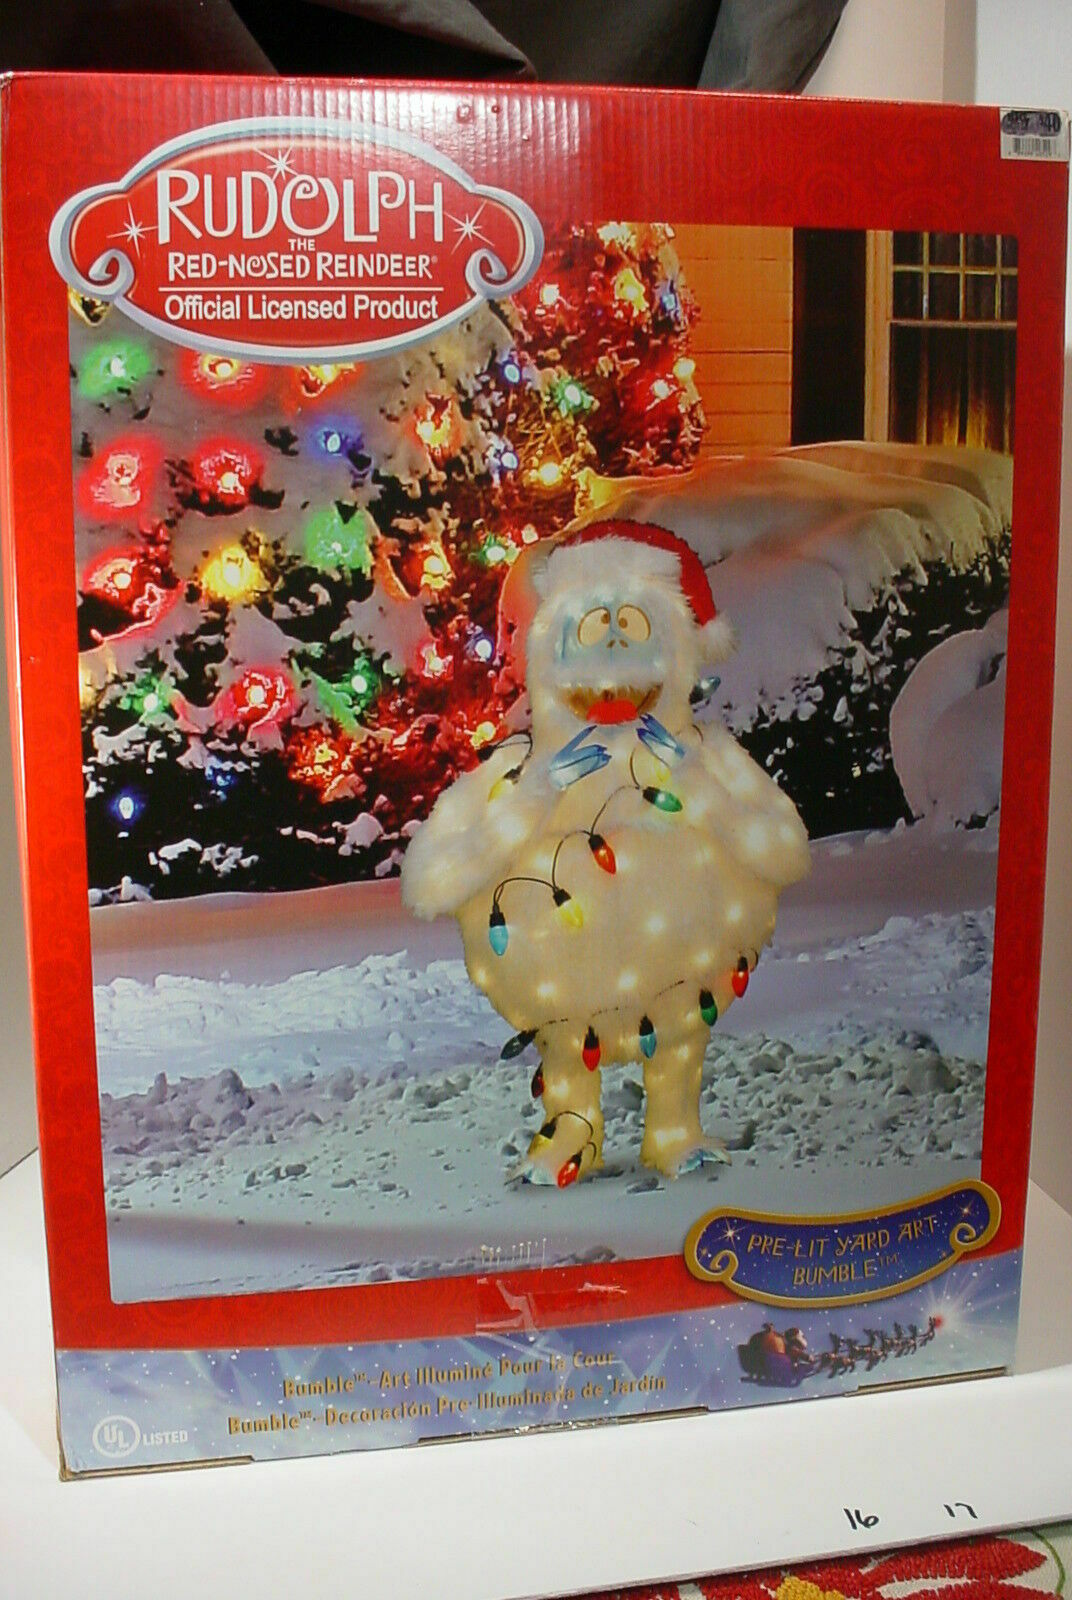 Outdoor Lighted Christmas Yard Decorations Bumble Rudolph Reindeer Lawn Pre Lit